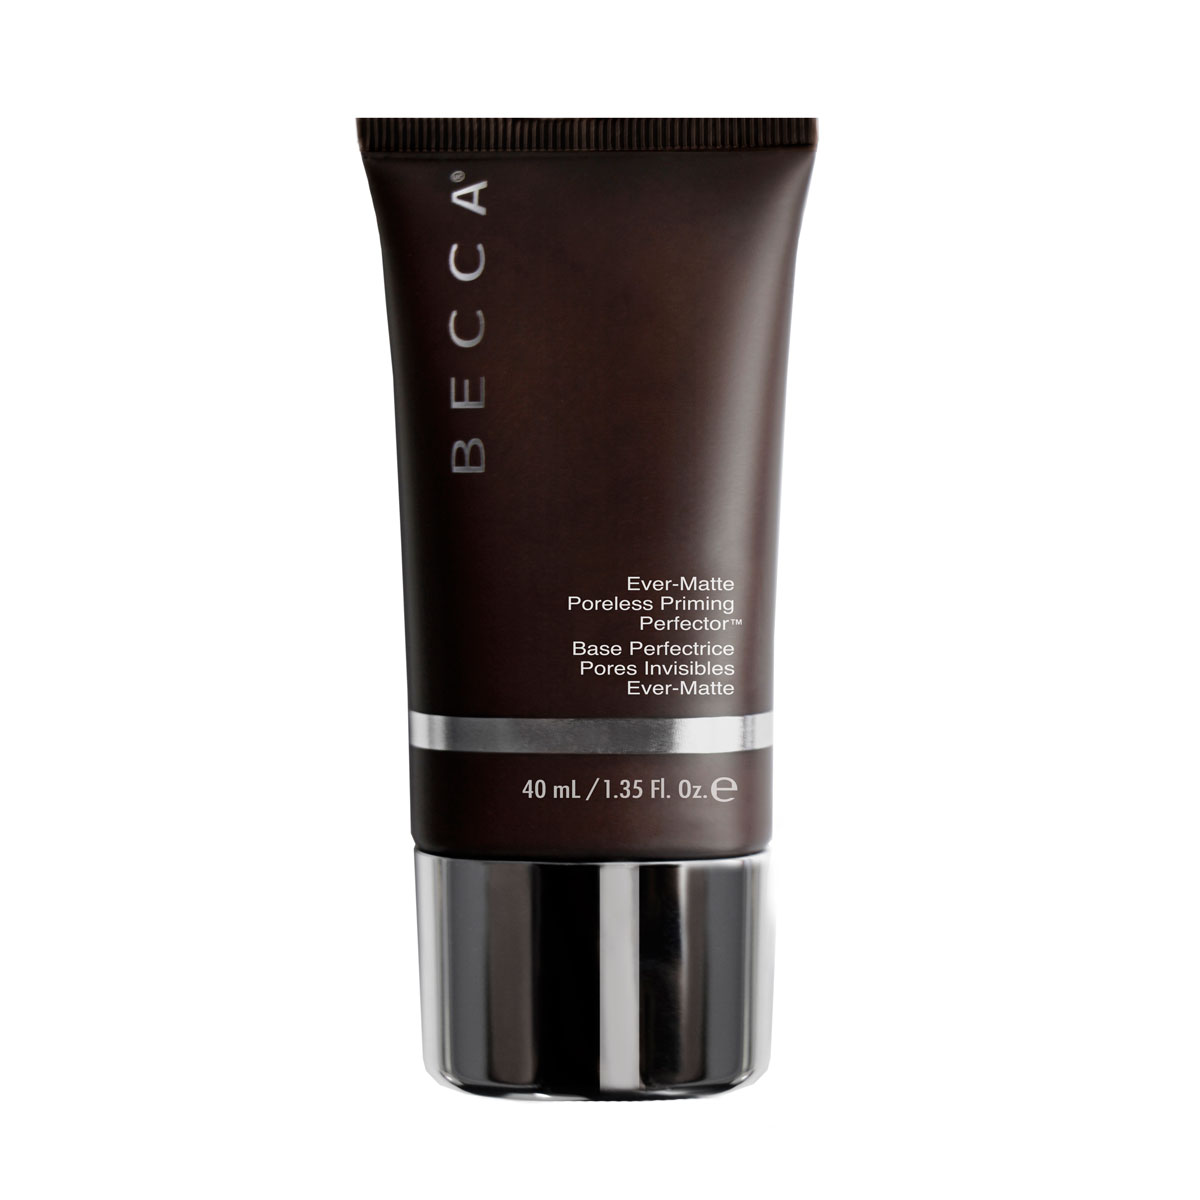 Becca ever-matte poreless priming perfector - latest beauty news & beauty products (glamour.com uk).